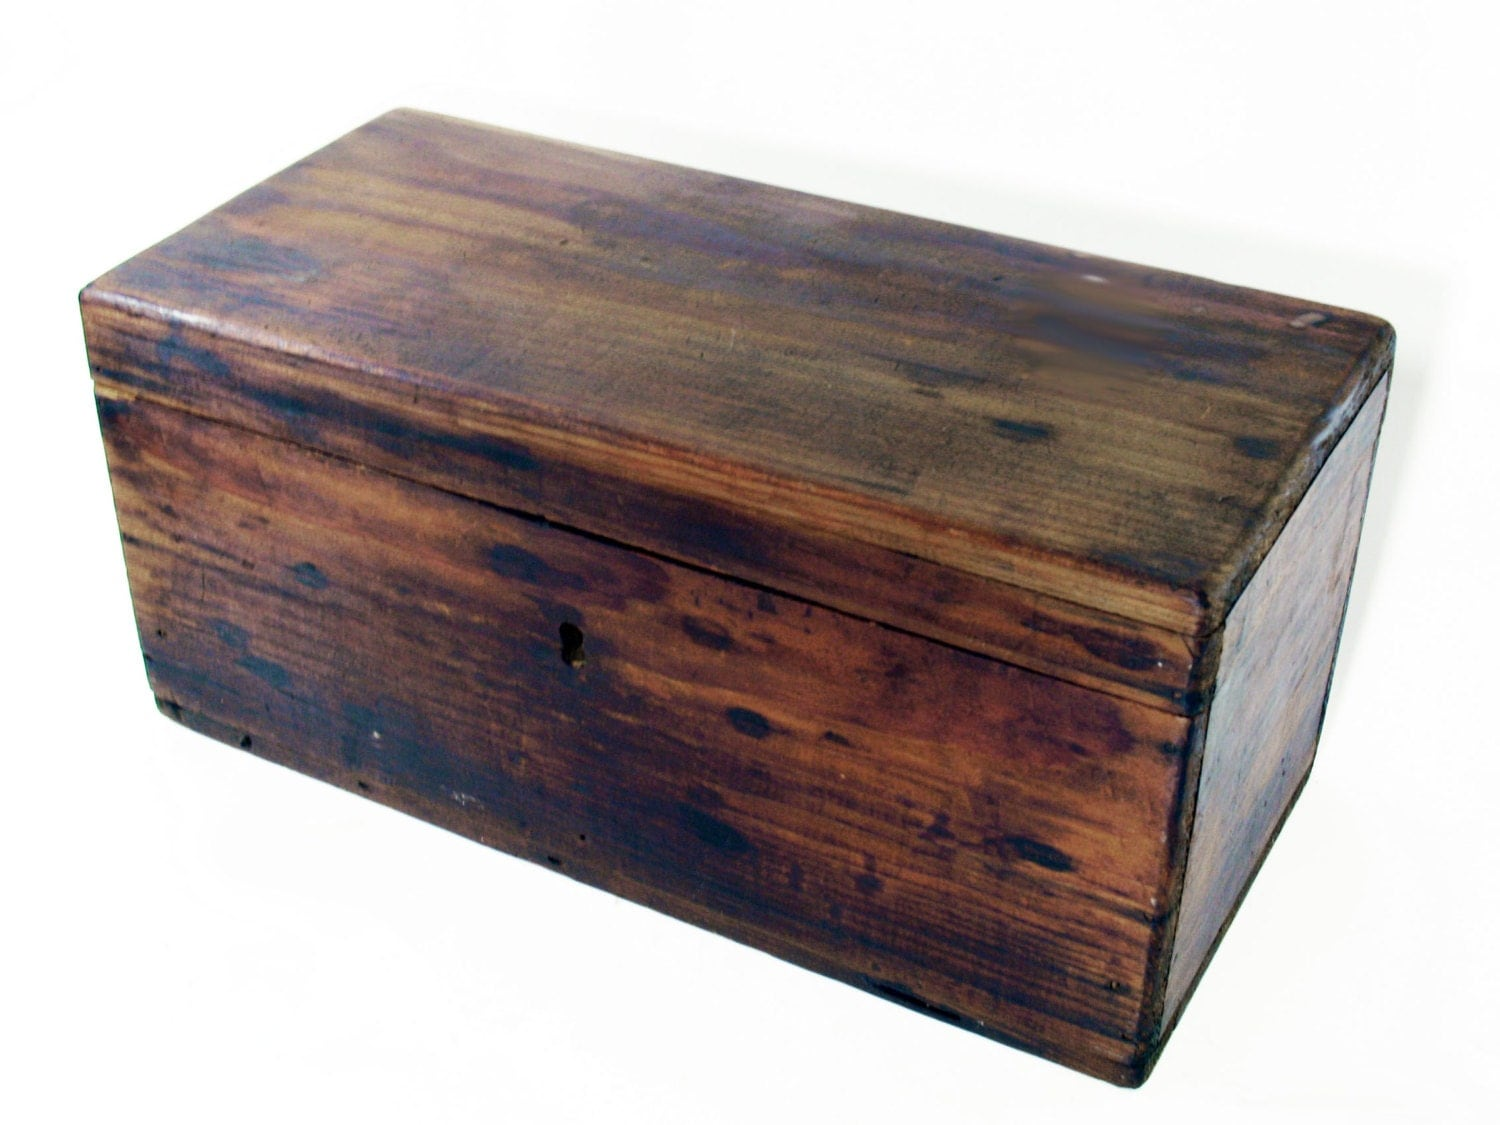 reserved wood box with hinged lid storage home decor. Black Bedroom Furniture Sets. Home Design Ideas